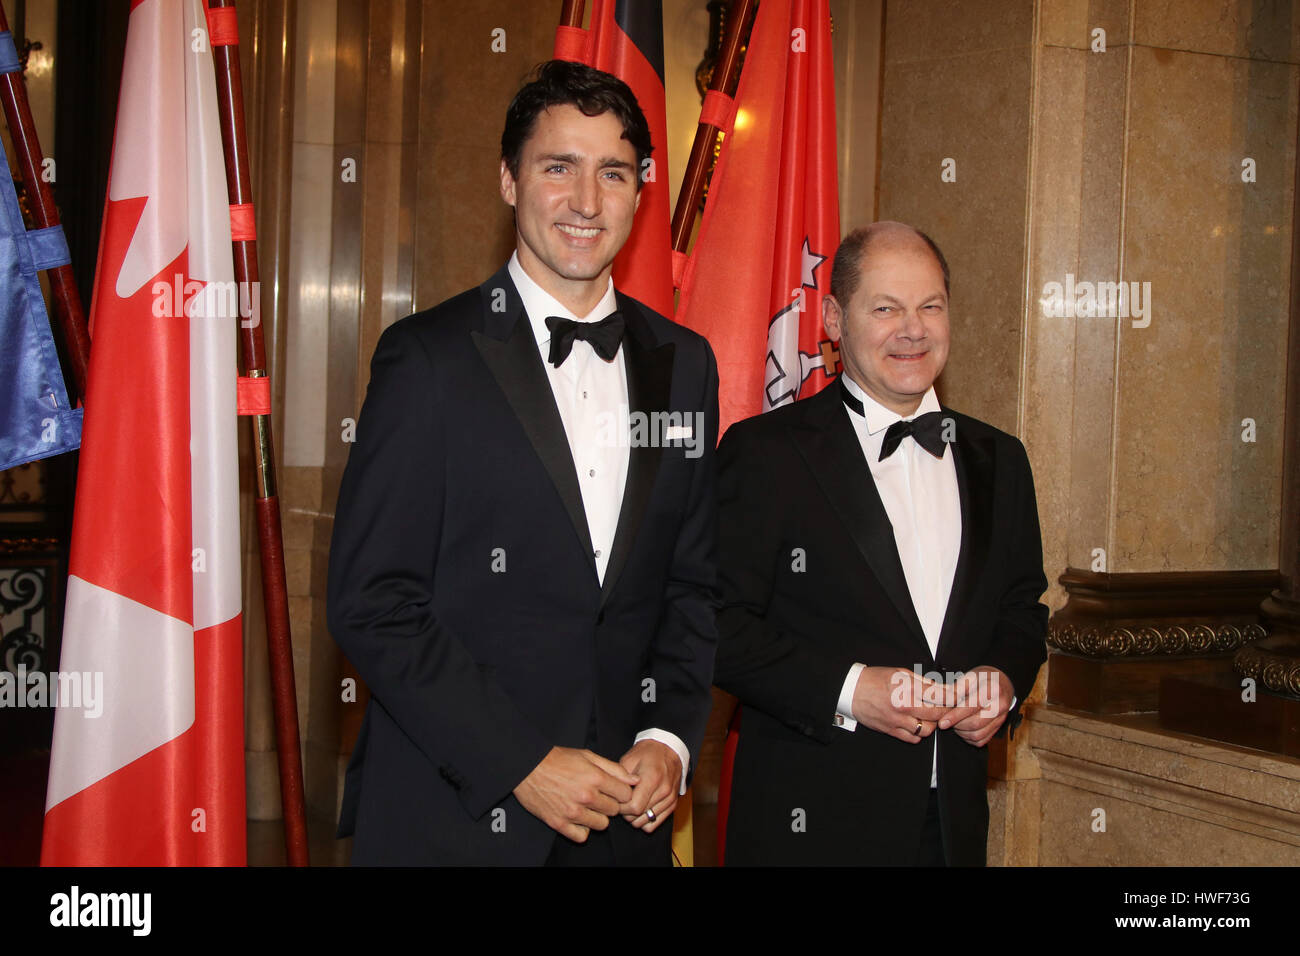 """Guest attending traditional annual Matthiae Mahl"""" (Dinner) 2017  Featuring: kanadischer Premierminister Justin Trudeau, Stock Photo"""